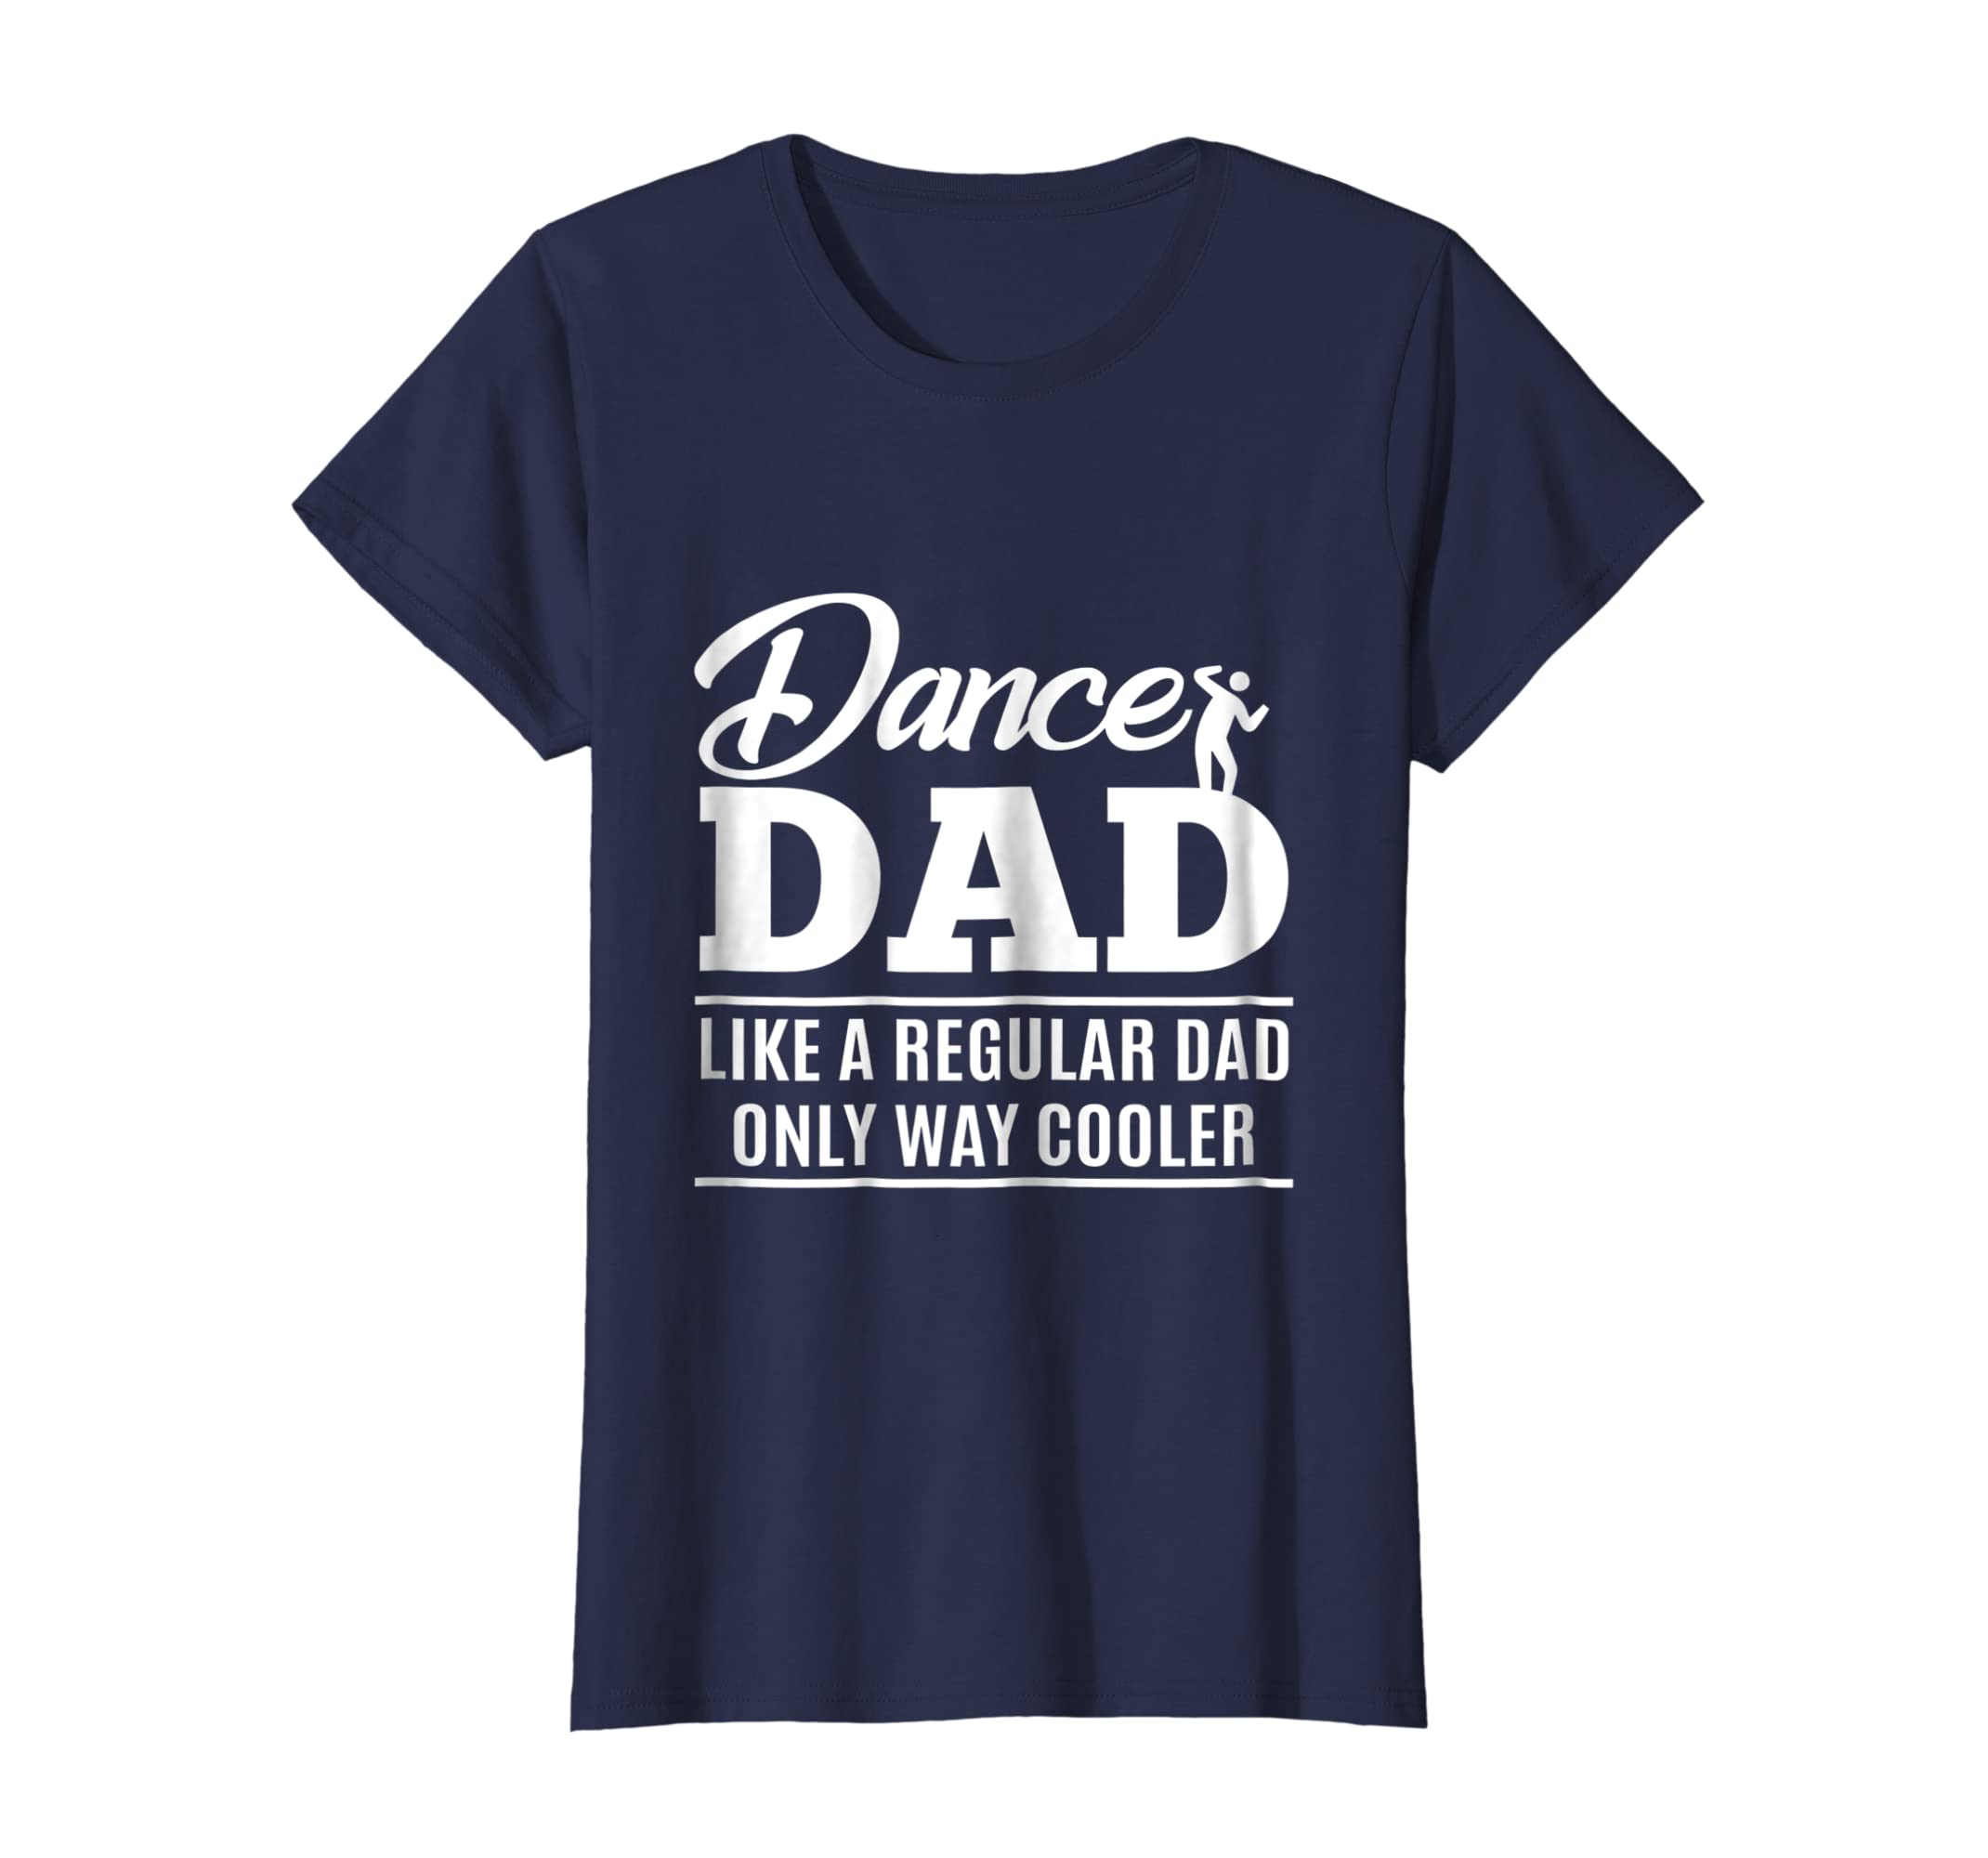 dadef30d Amazon.com: Dance Dad Shirt - Dance Dad gifts: Clothing